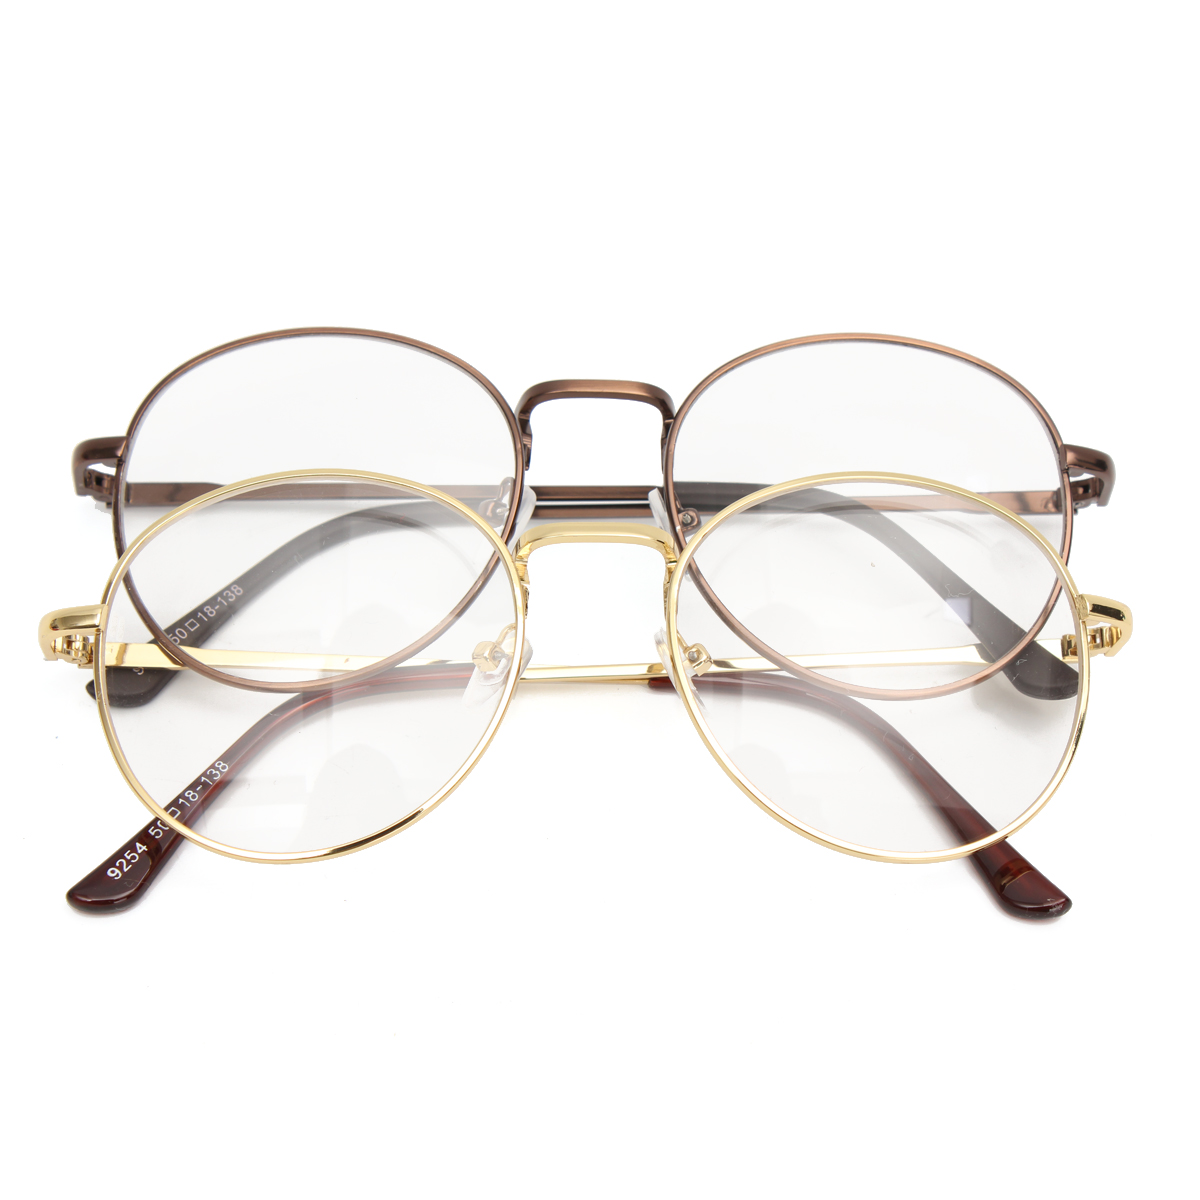 Unisex Retro Vintage Oval Eyeglasses Frame Spectacles Clear Plain Glasses